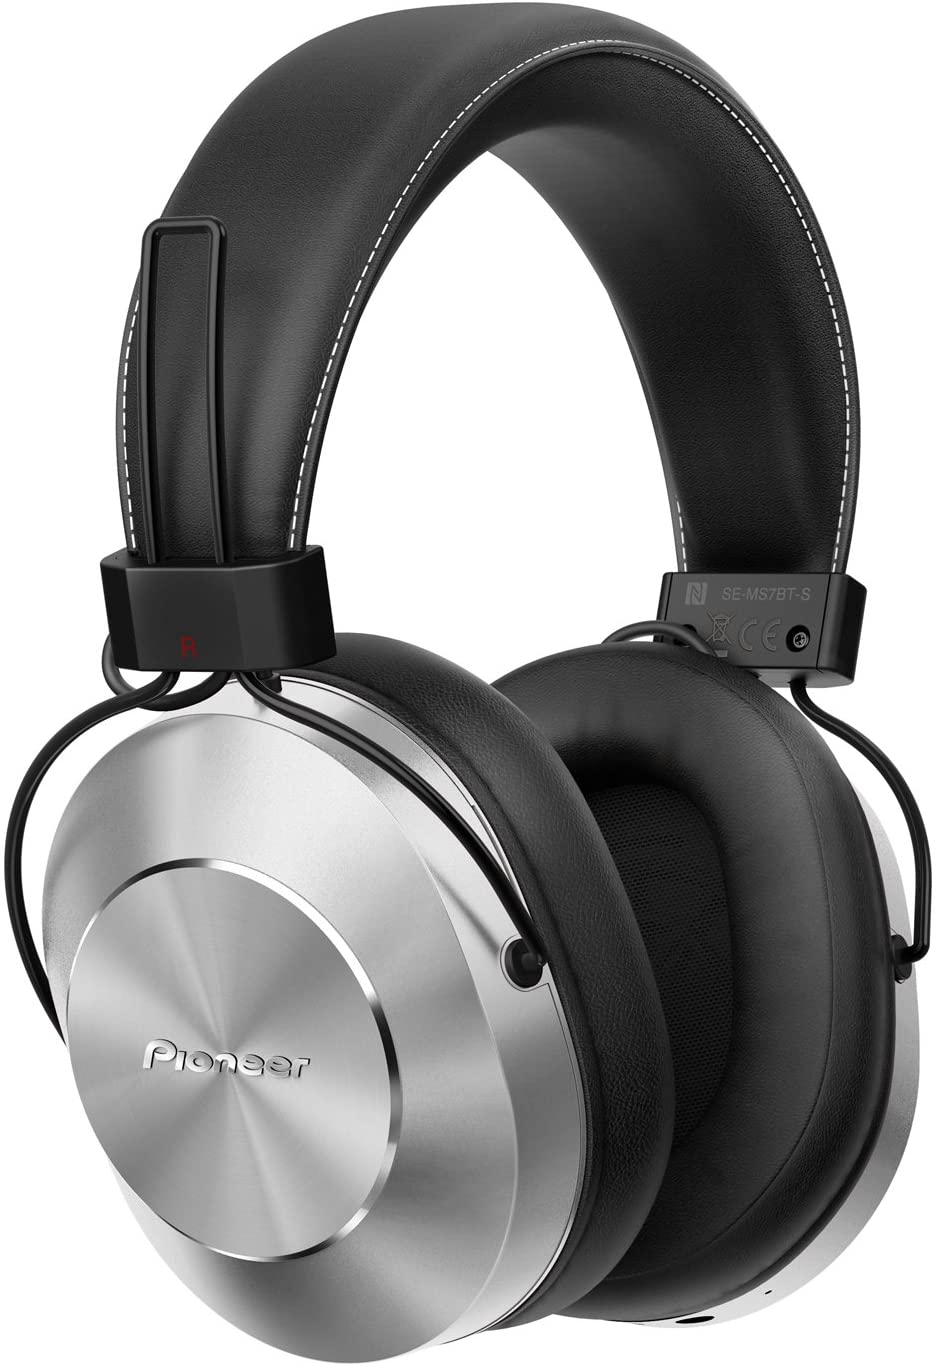 Pioneer SE-MS7BT-S - Auriculares de Tipo Diadema (Bluetooth, Hires, Power Bass, NFC), Color Plata